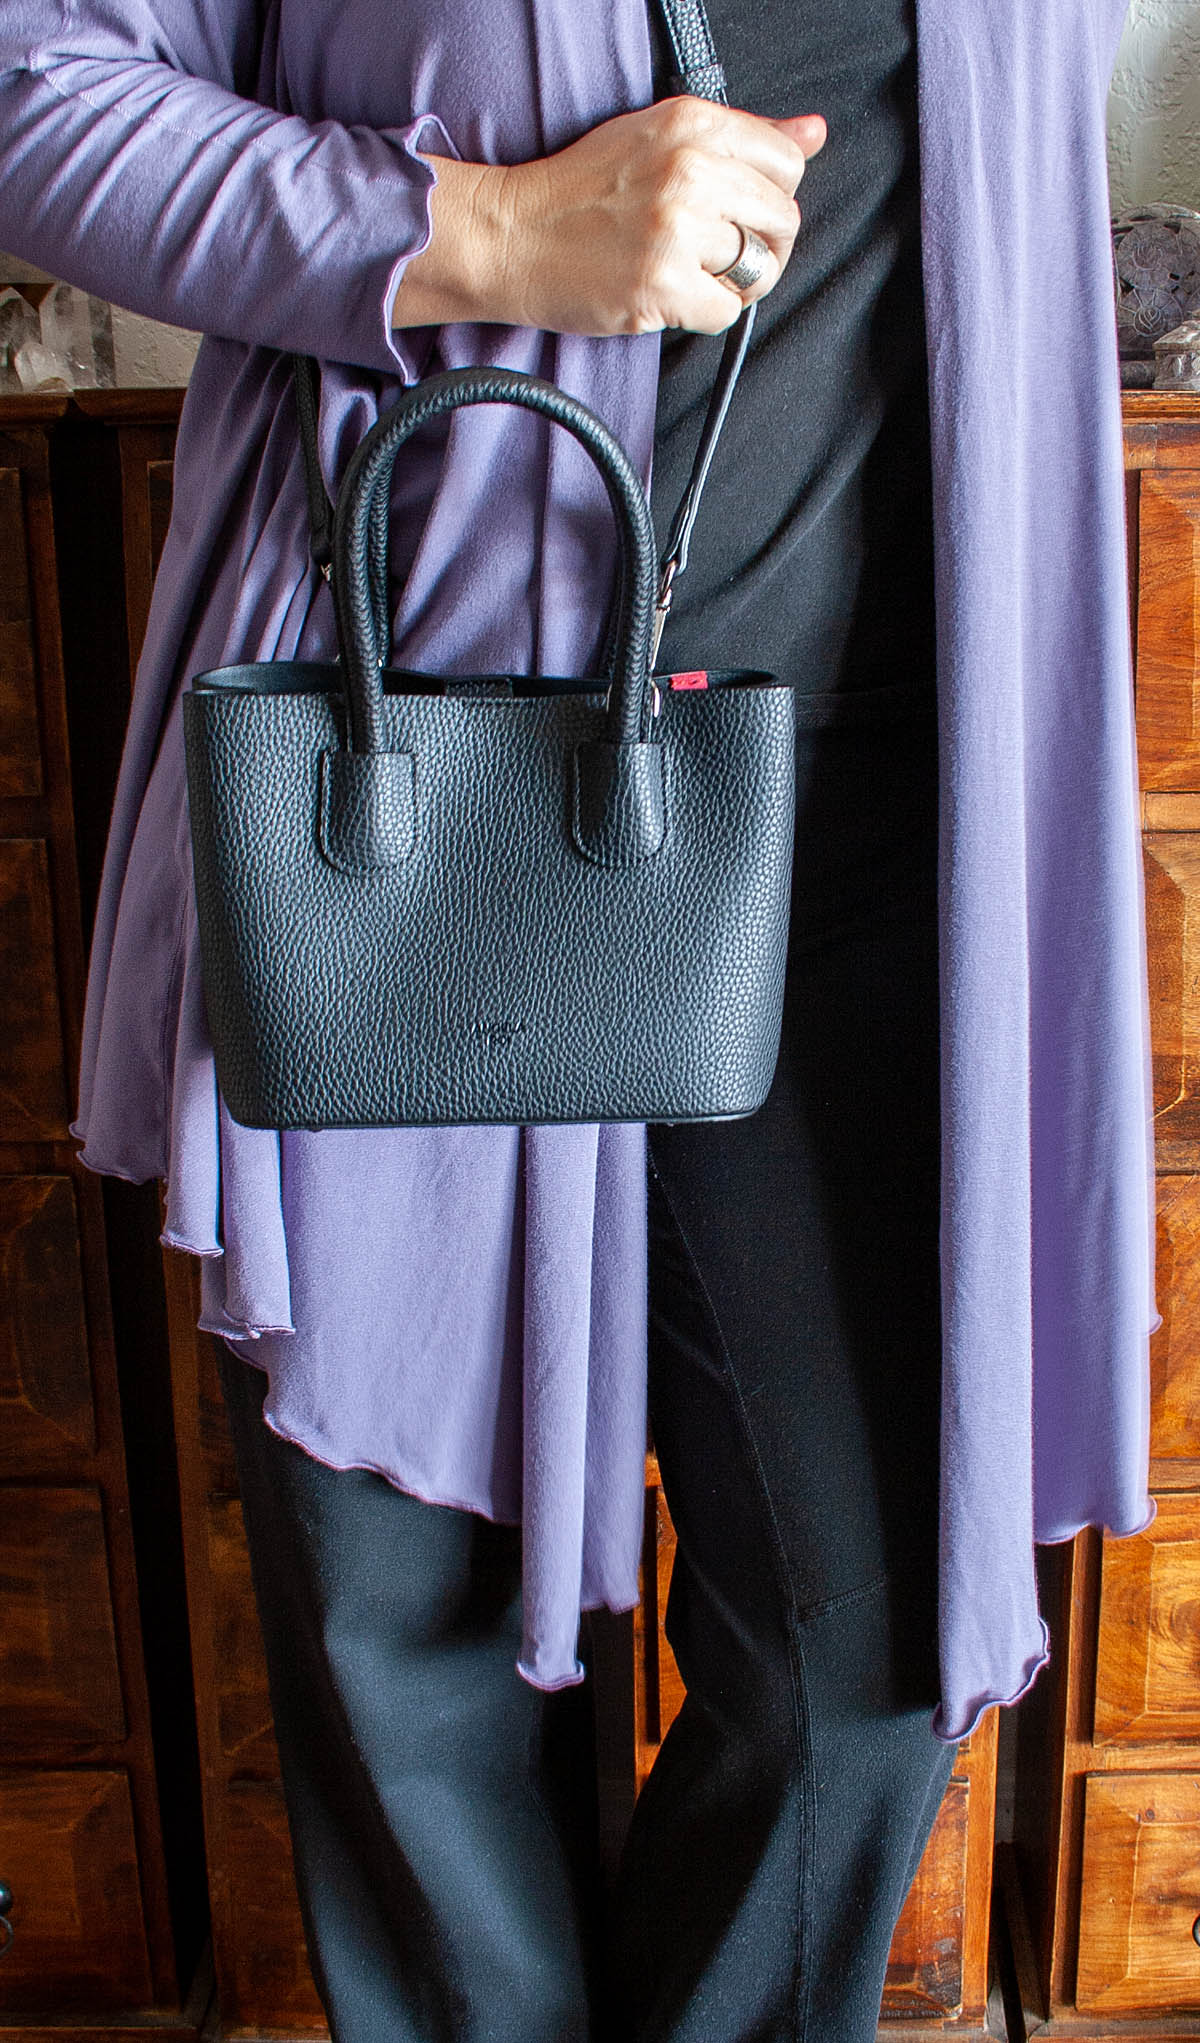 Photo of me in black pants, black t-shirt, lavender cover up and black Cher Micro handbag on my shoulder.